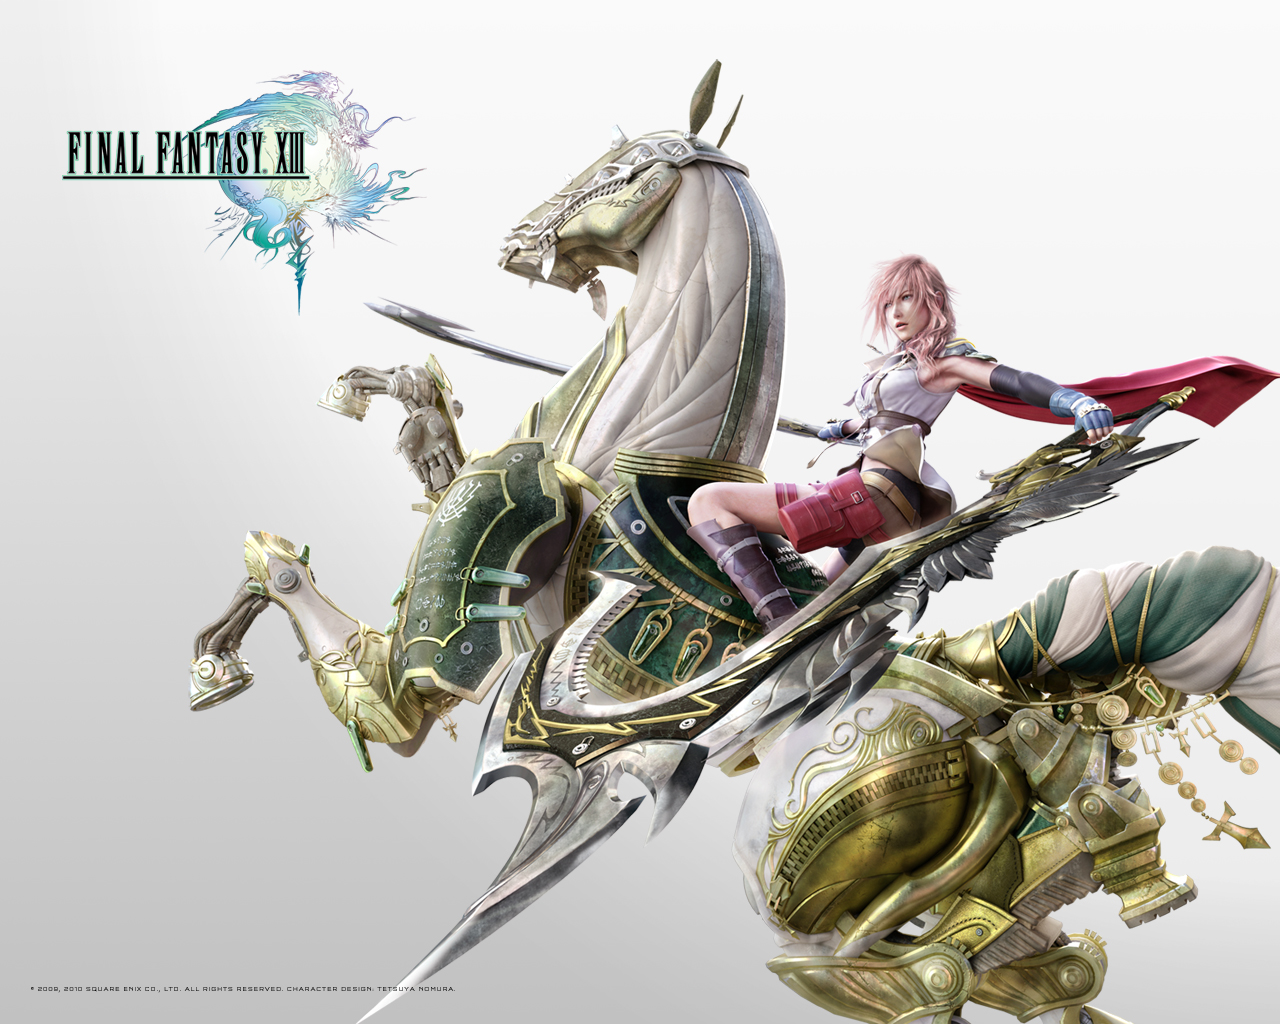 Final Fantasy XIII - Lightning by Sqaure-Enix - Desktop Wallpaper